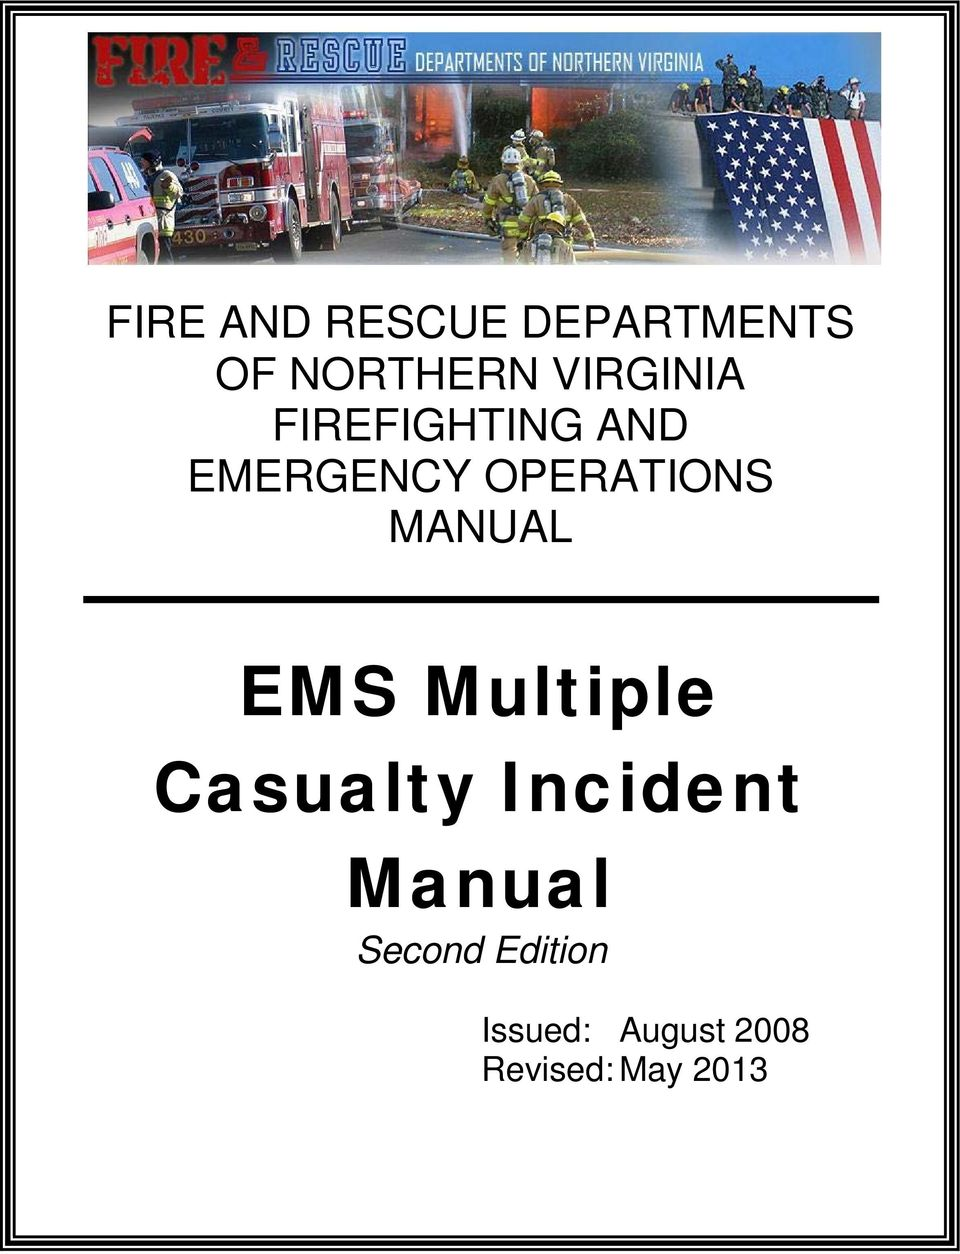 OPERATIONS MANUAL EMS Multiple Casualty